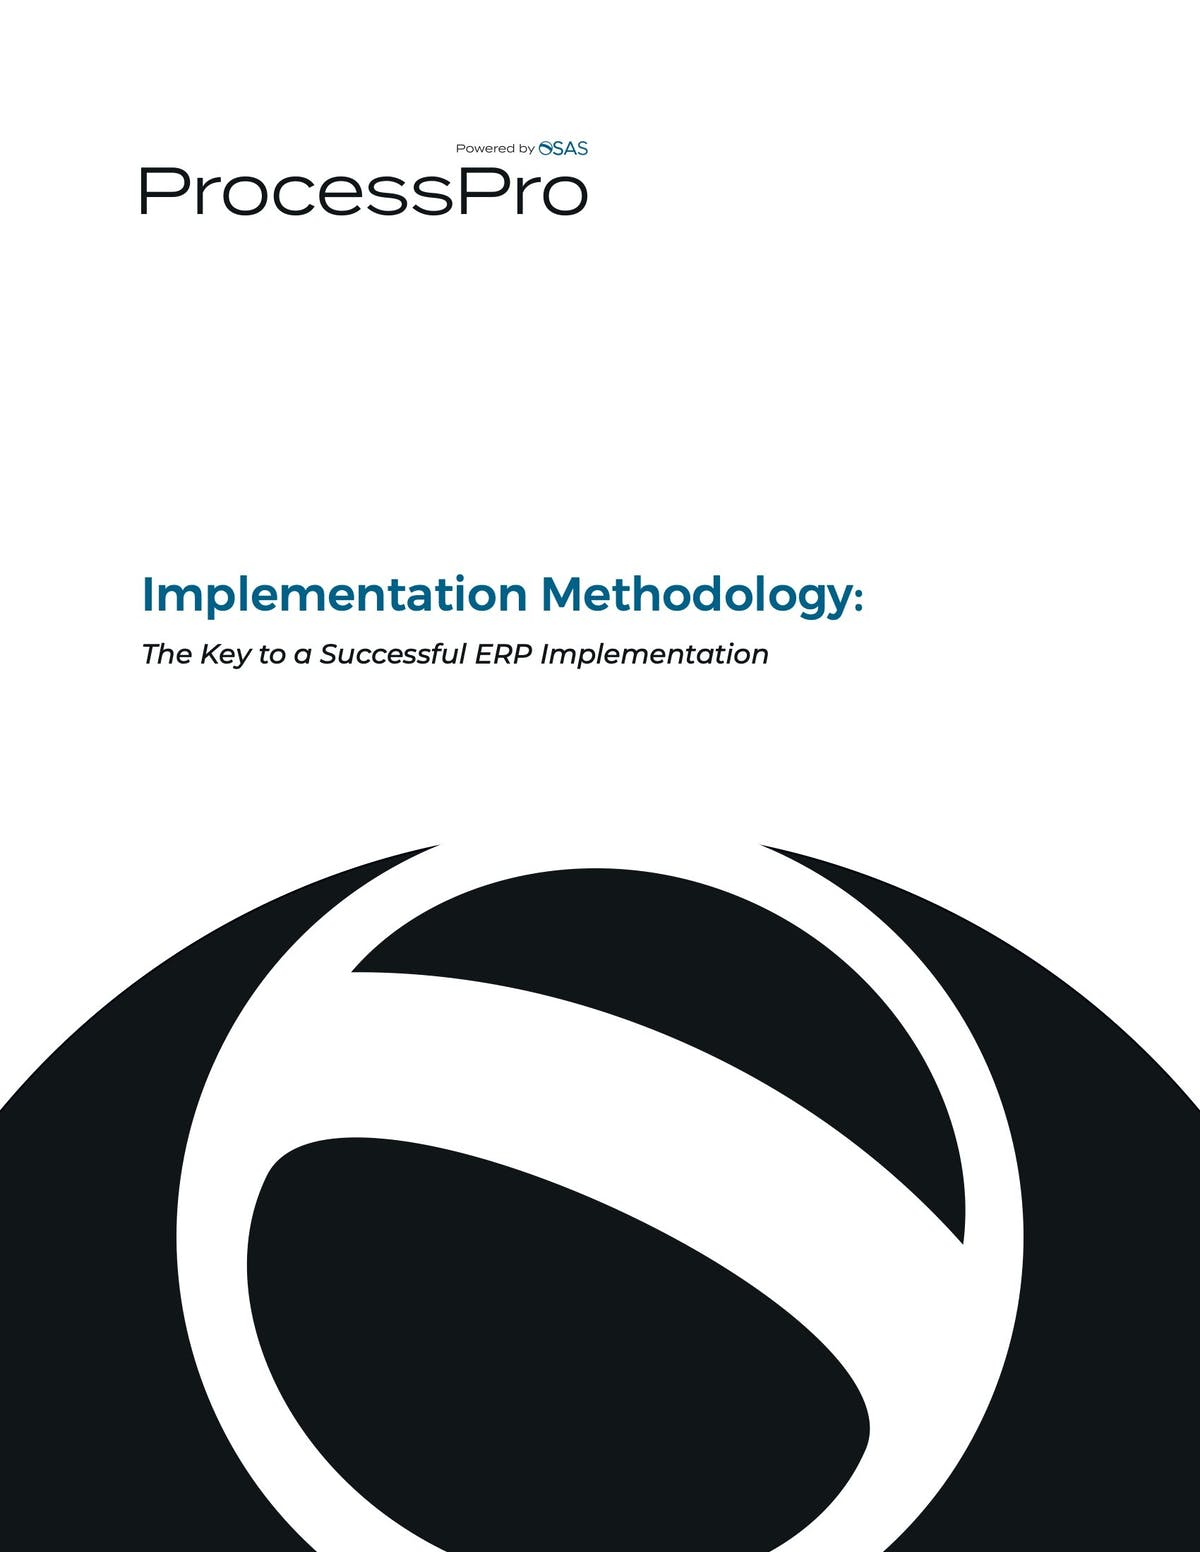 ProcessPro White Paper - The Key to a  Successful ERP Implementation